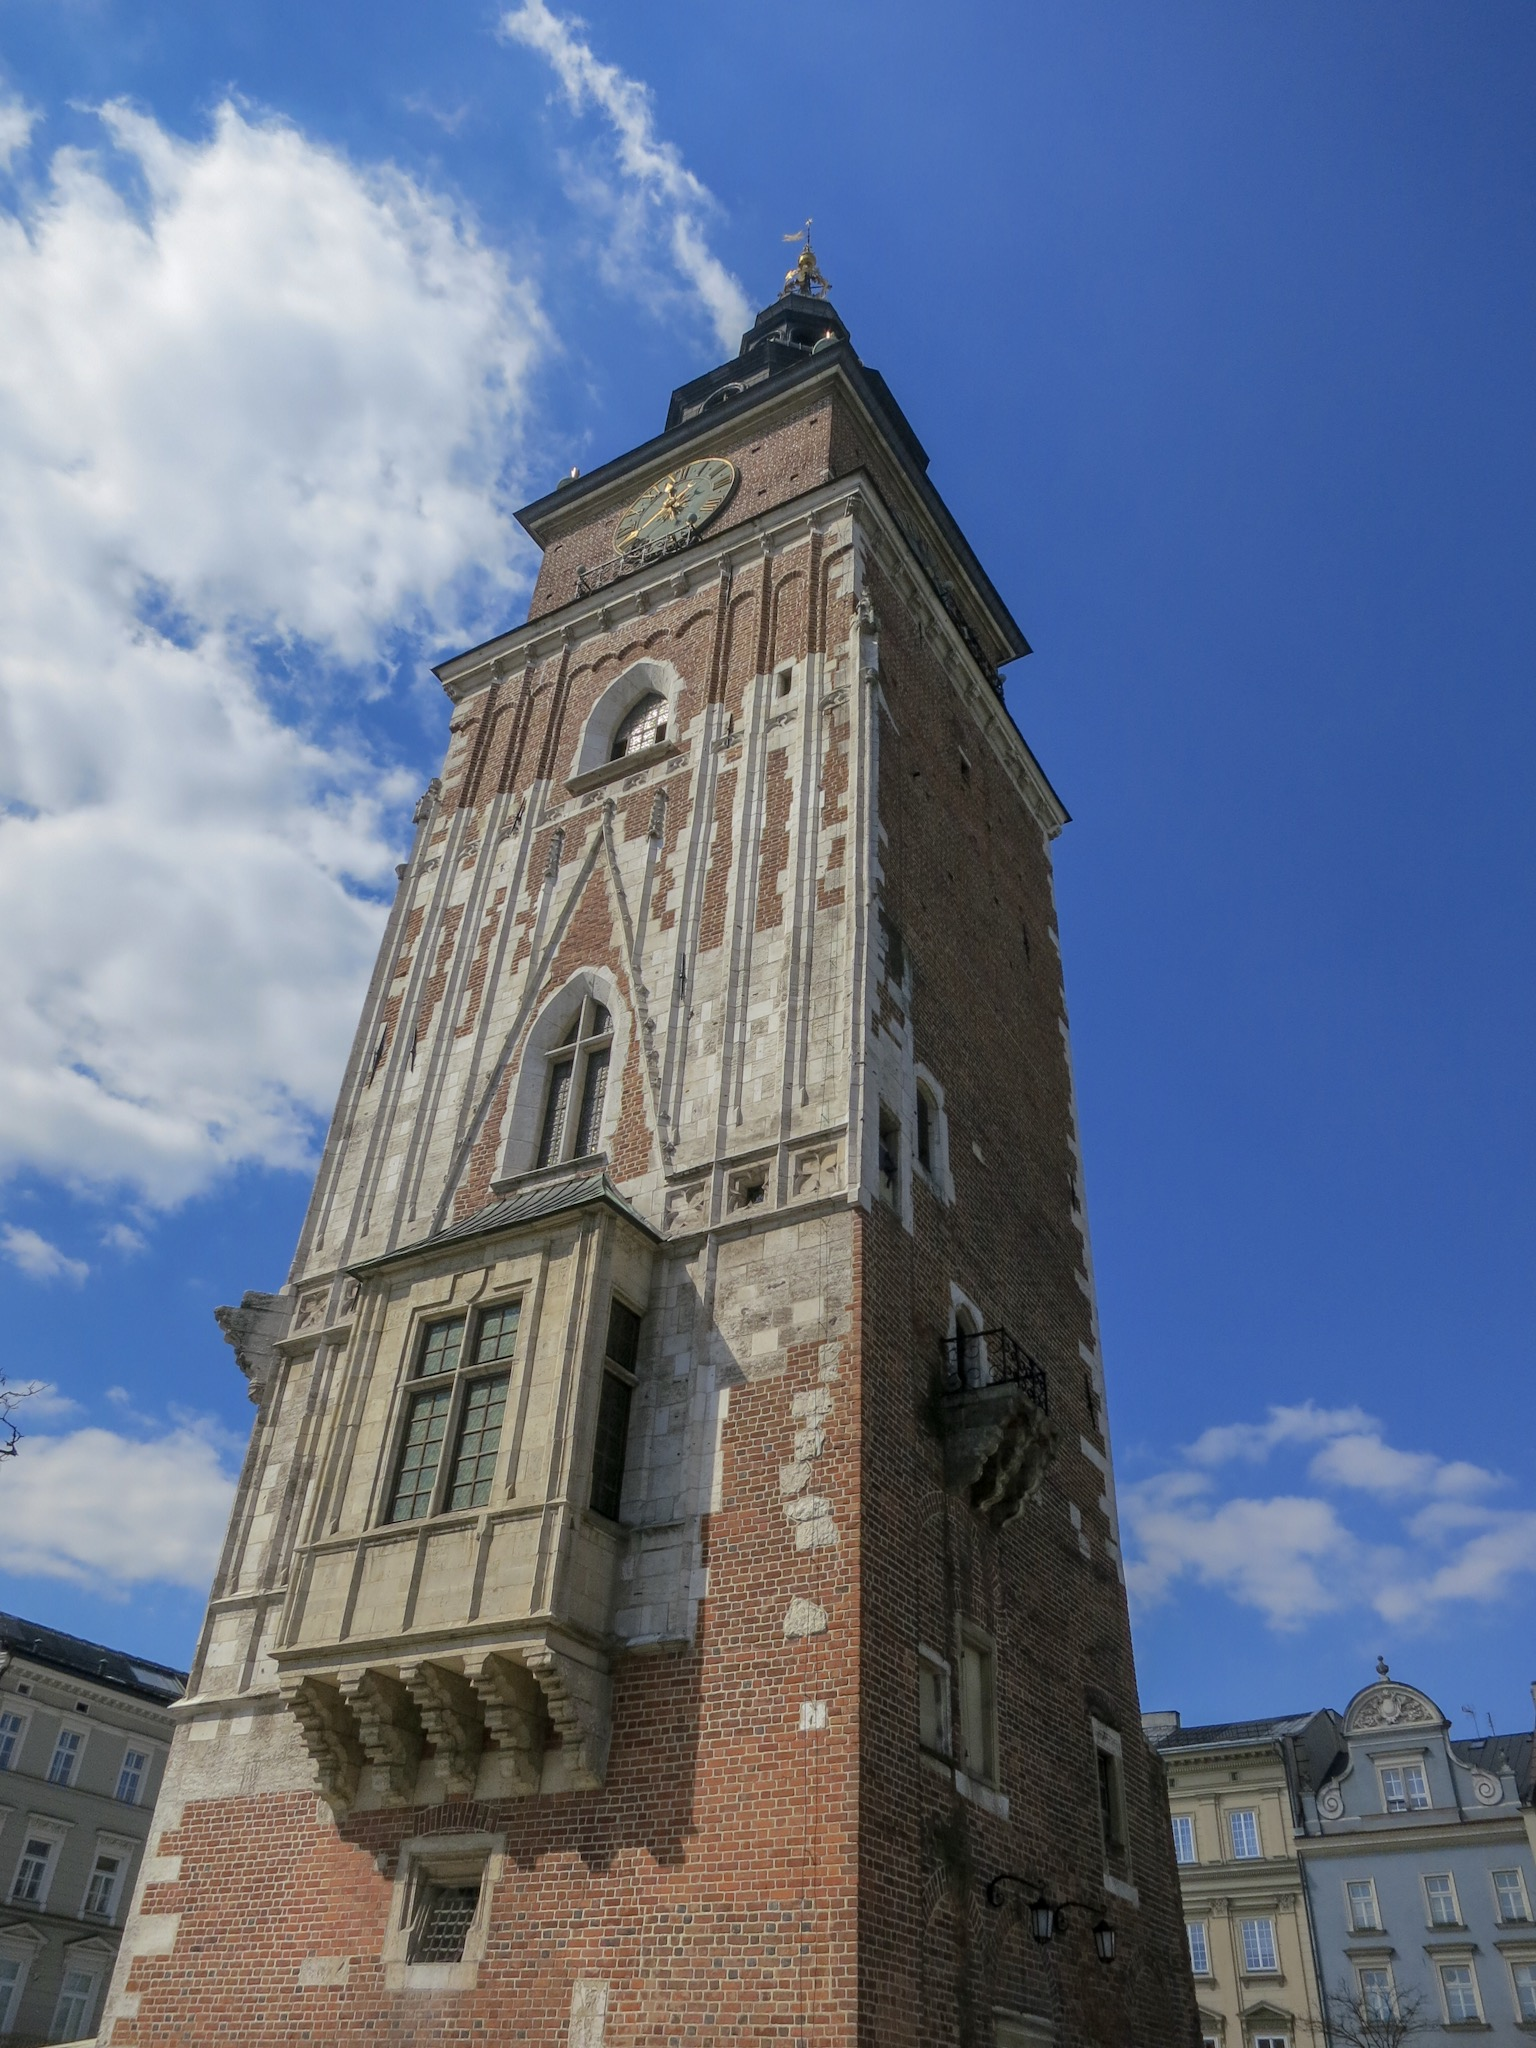 Krakow's old Town Hall Tower